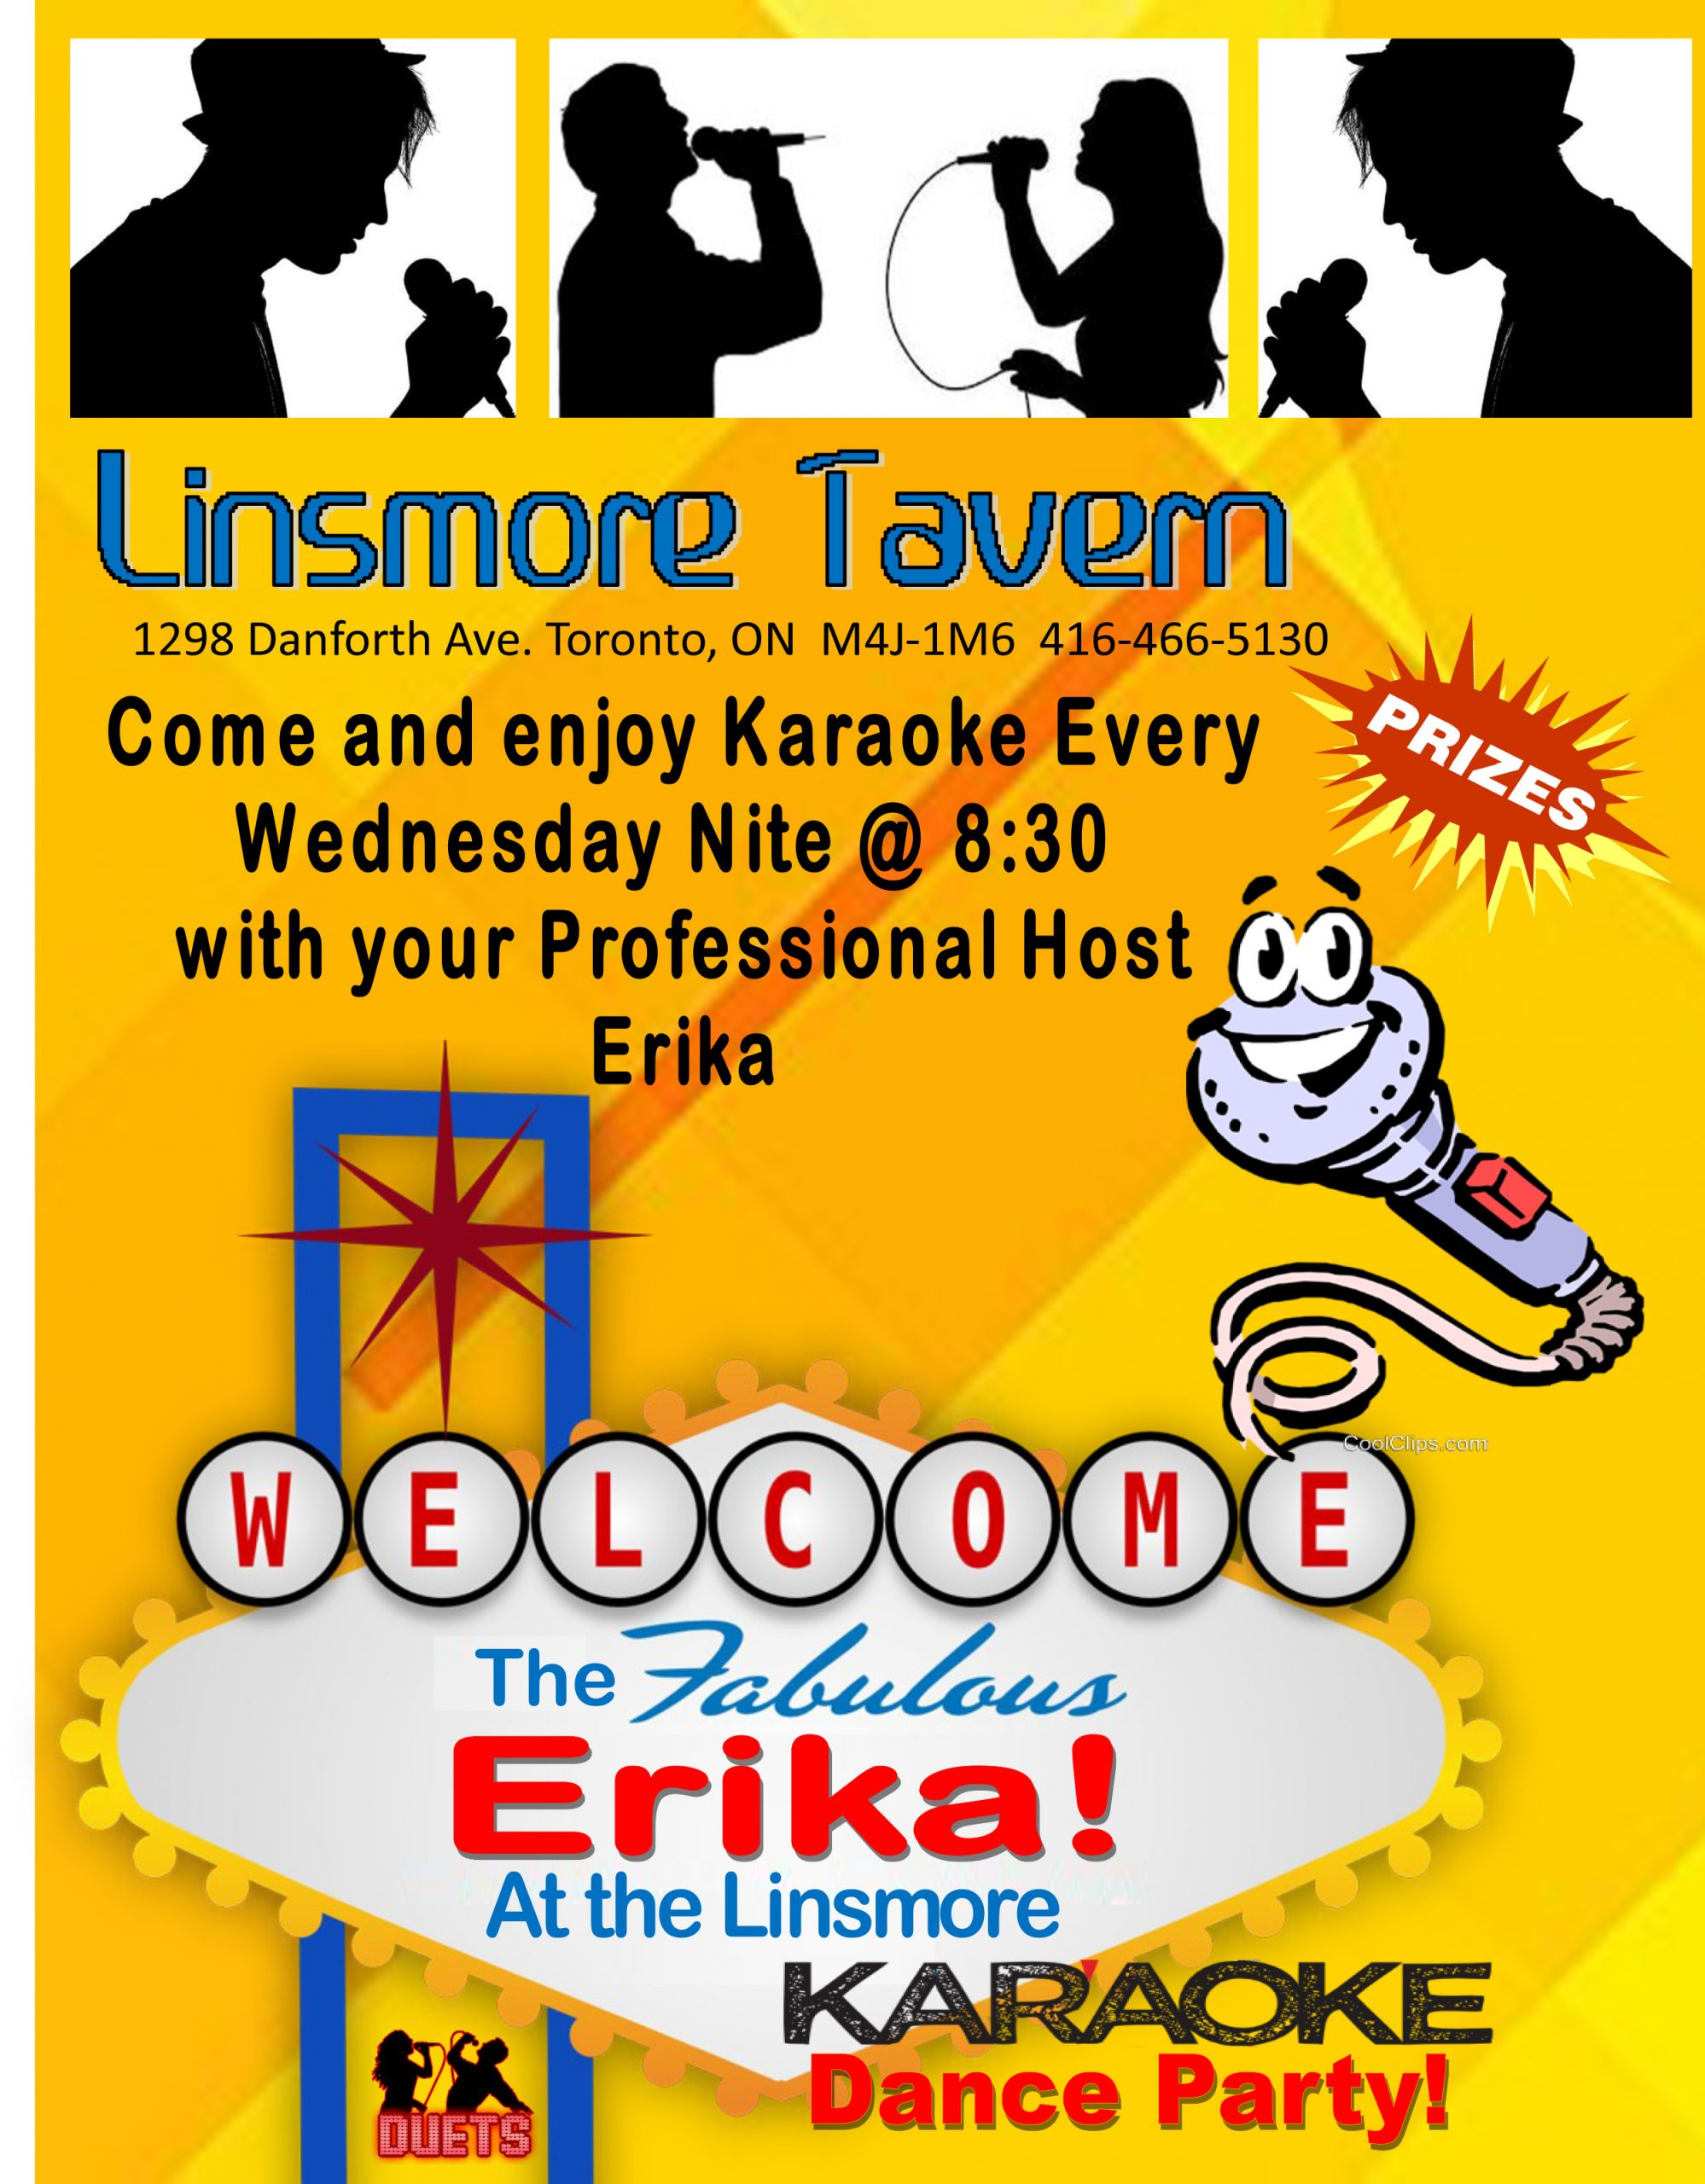 Las Vegas Style Karaoke Dance Party with Erika, Every Wednesday!